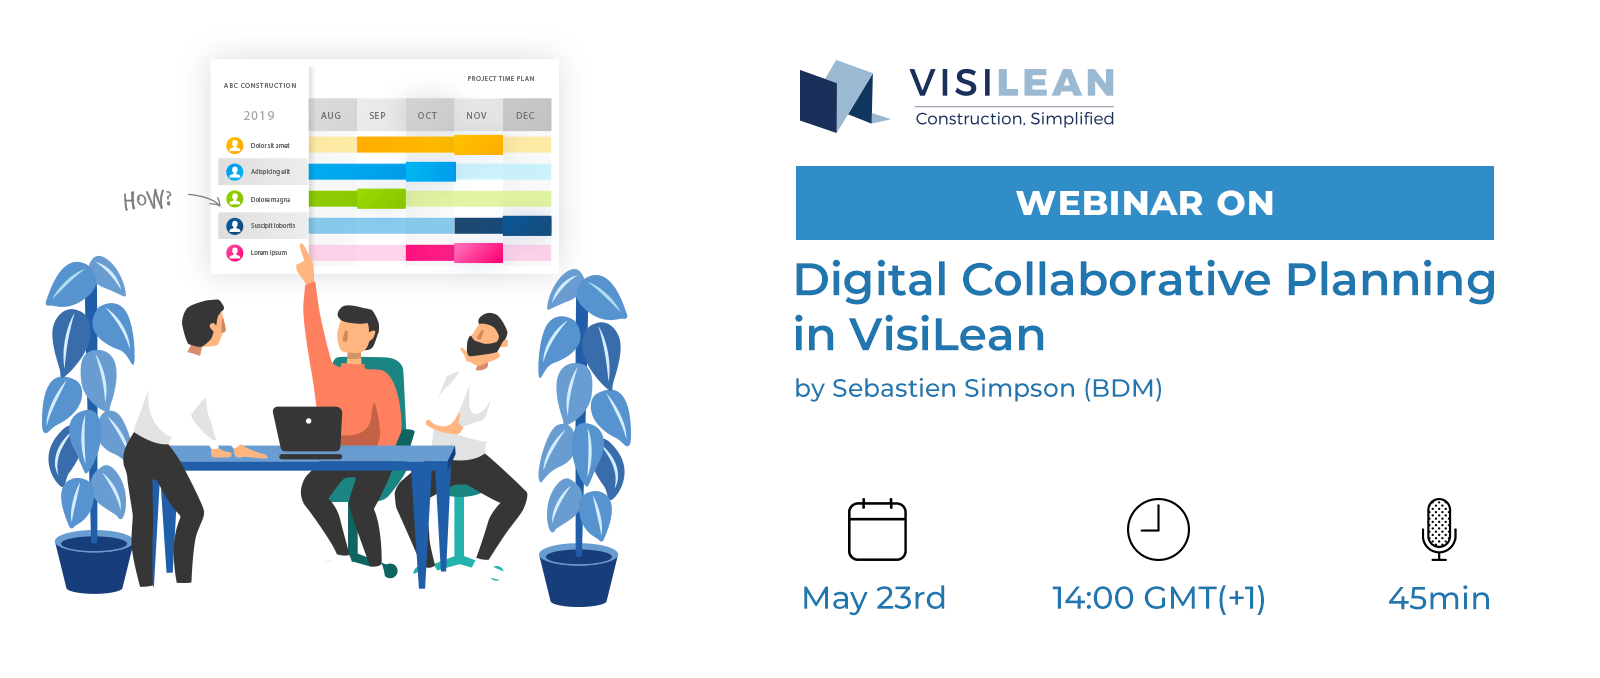 Webinar on Digital Collaborative Planning in VisiLean